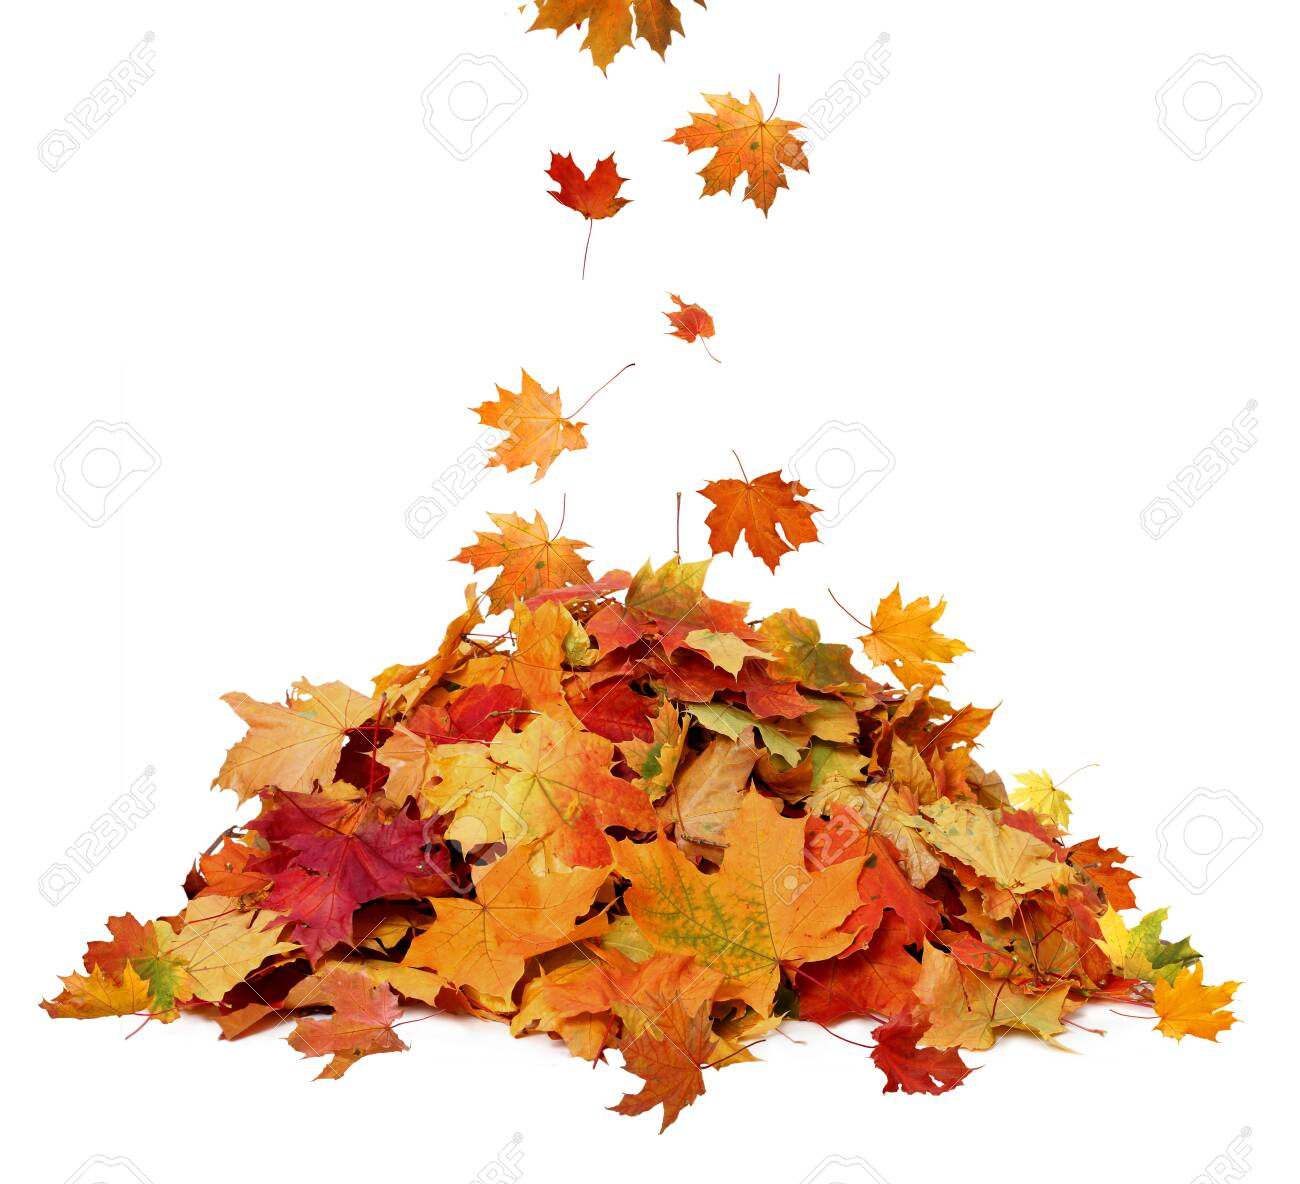 Pile of autumn colored leaves isolated on white background.A heap of different maple dry leaf .Red and colorful foliage colors in the fall season - 130015201